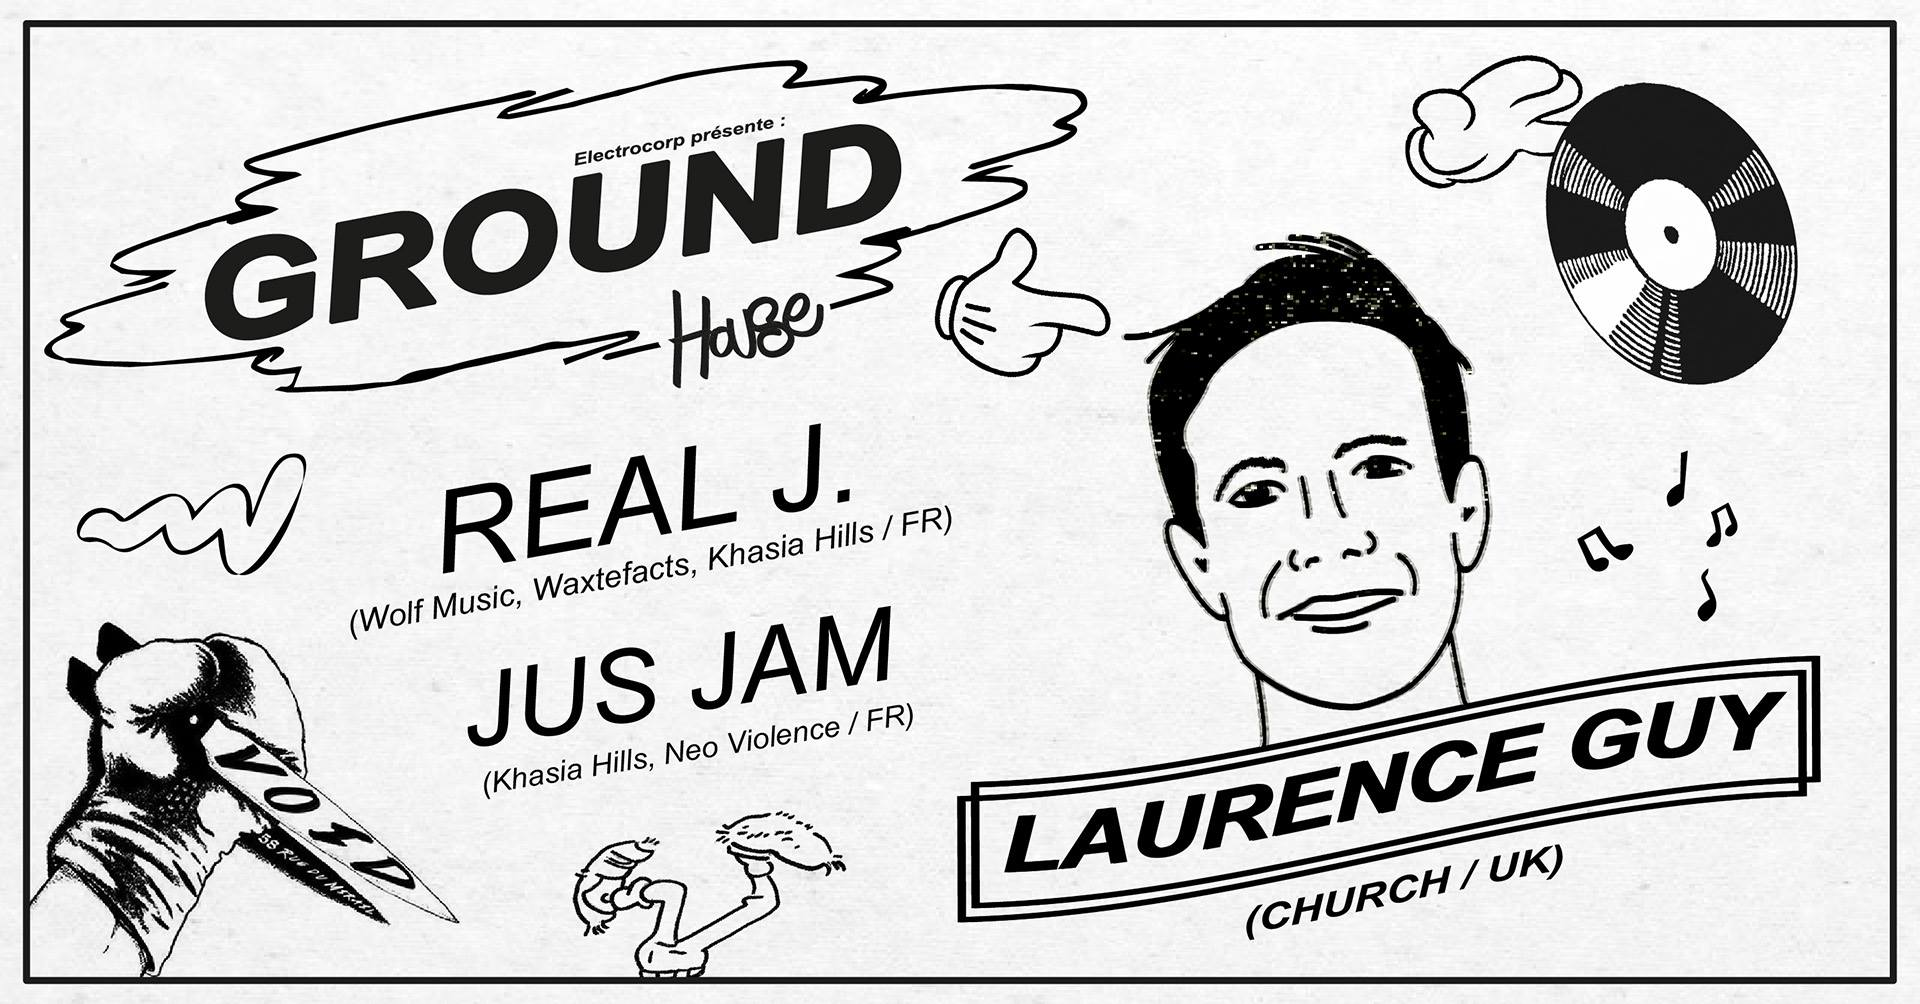 Ground invite Laurence Guy au VOID